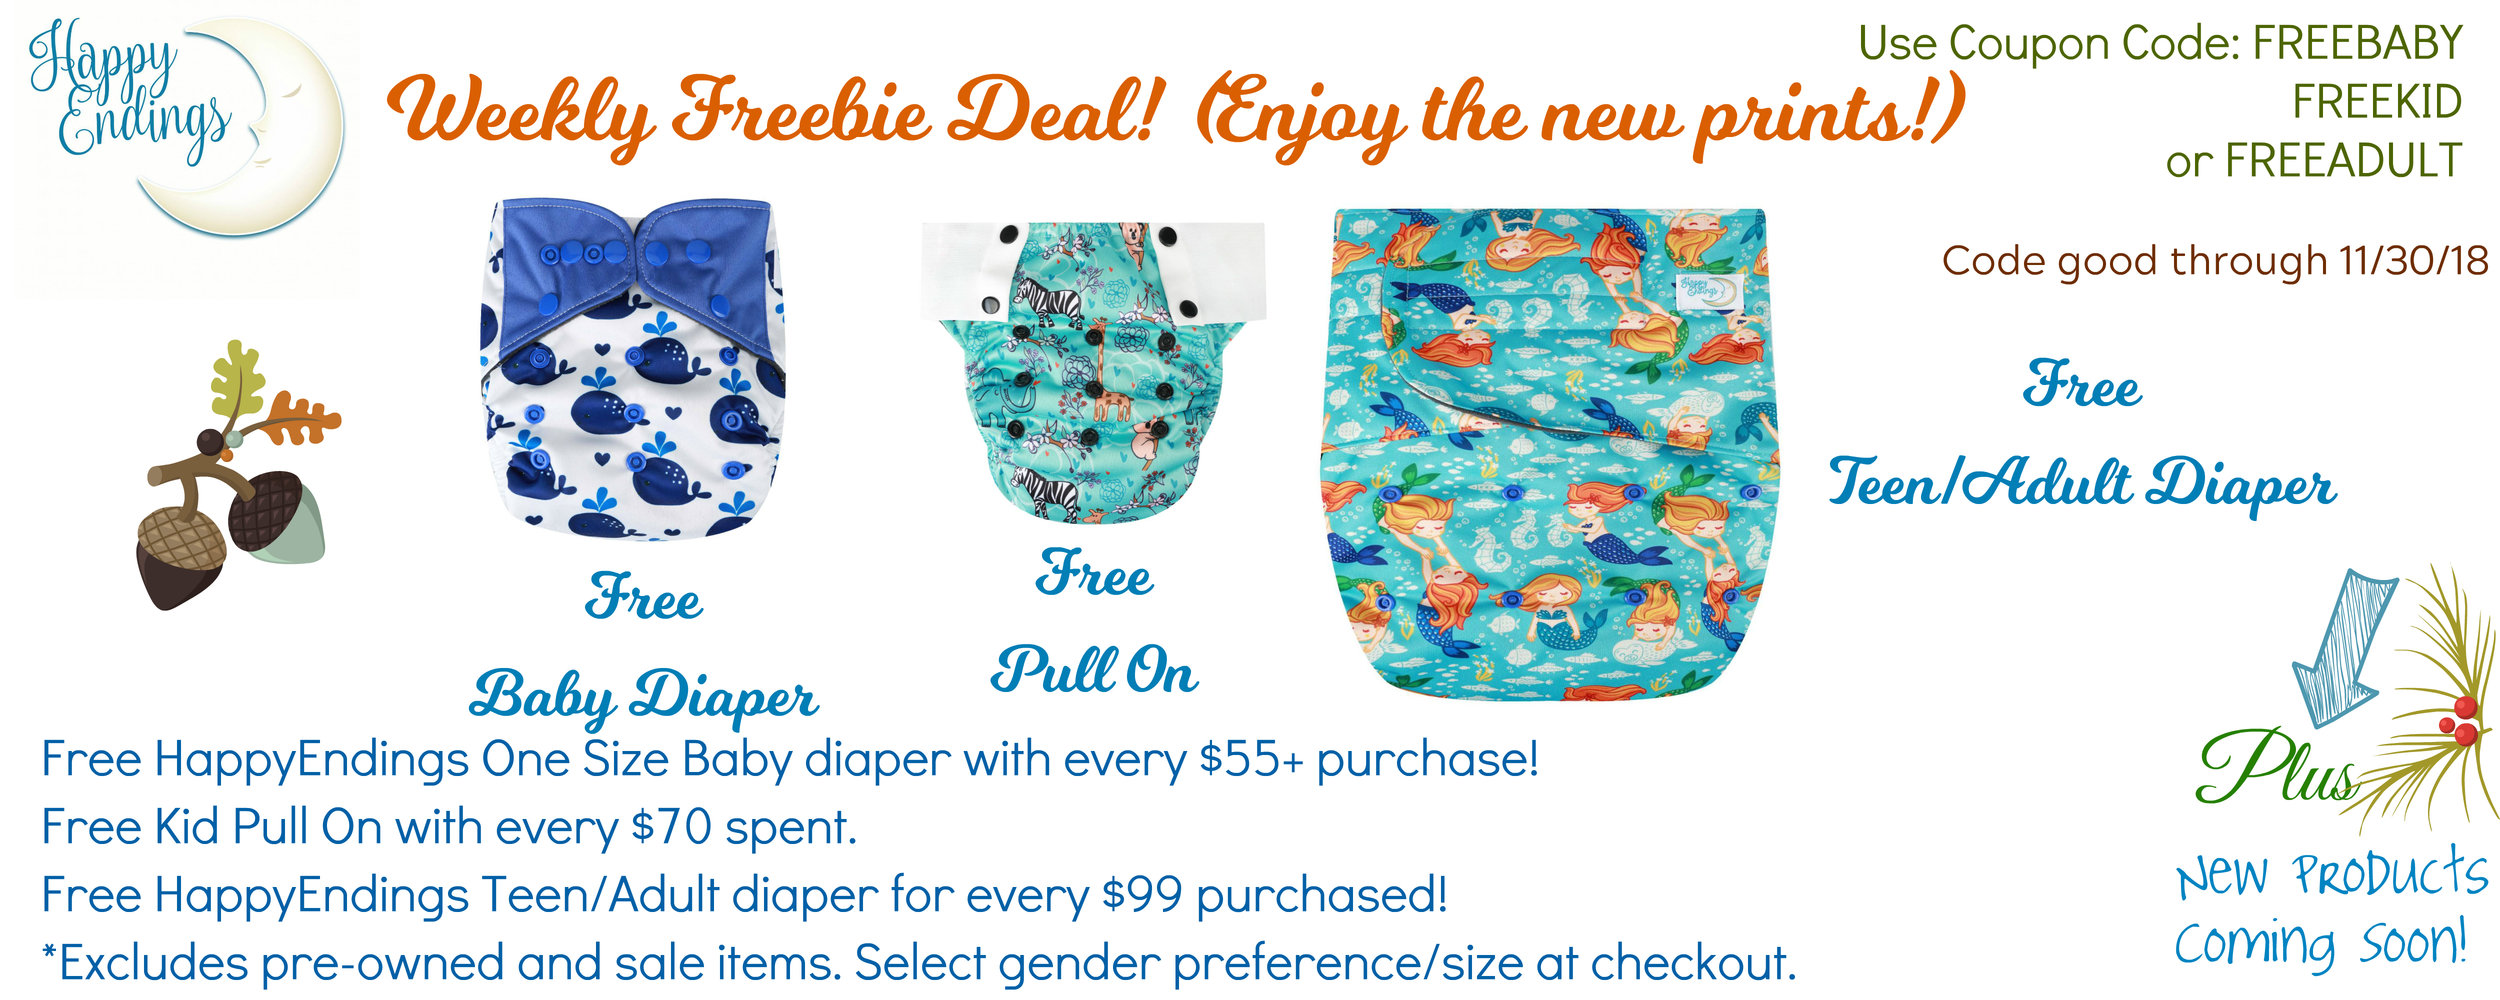 This offer cannot be combined with any other offer. Excludes pre-owned and adult product purchases. Free items selected by HappyEndings Eco Diapers; more prints than pictured available for the free diaper. Select gender preference during checkout.